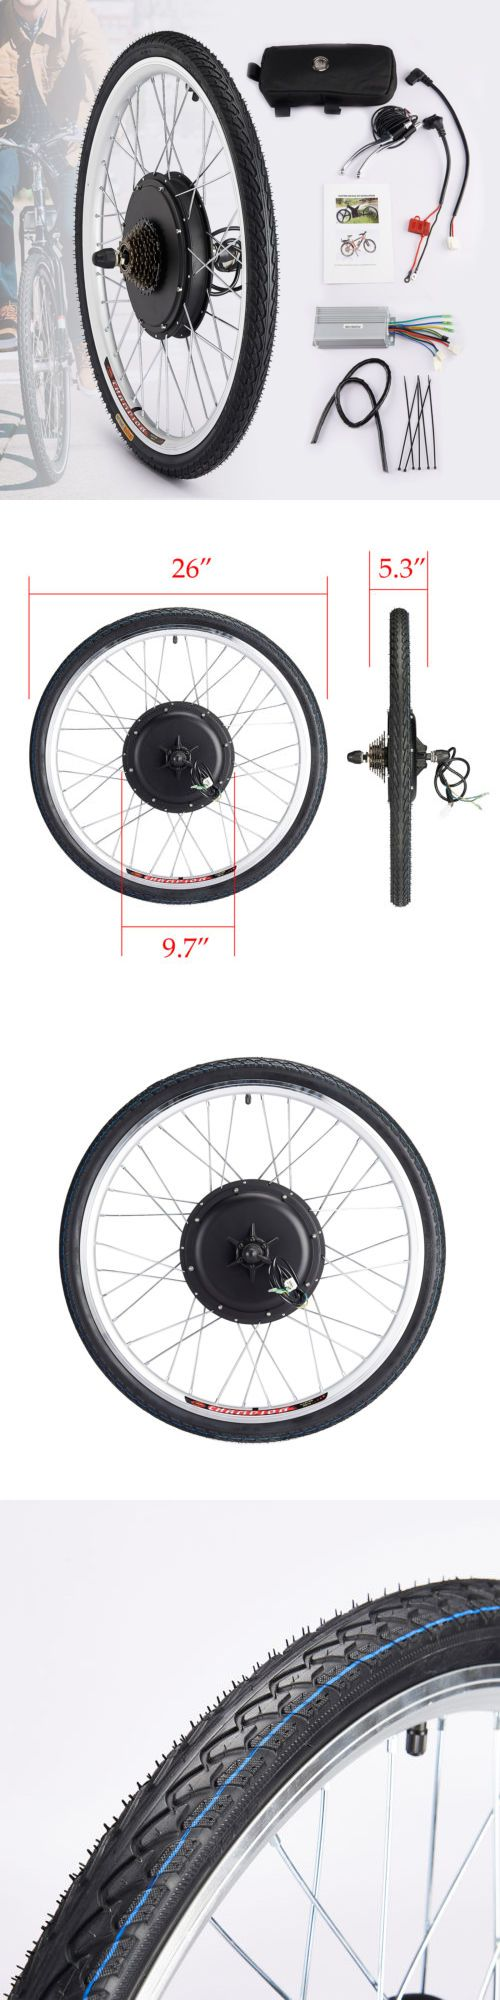 Electric Bicycle Components 177814: 36V 500W Electric Bike Conversion Kit For Rear Wheel Motor Hub Control -> BUY IT NOW ONLY: $145.99 on eBay!